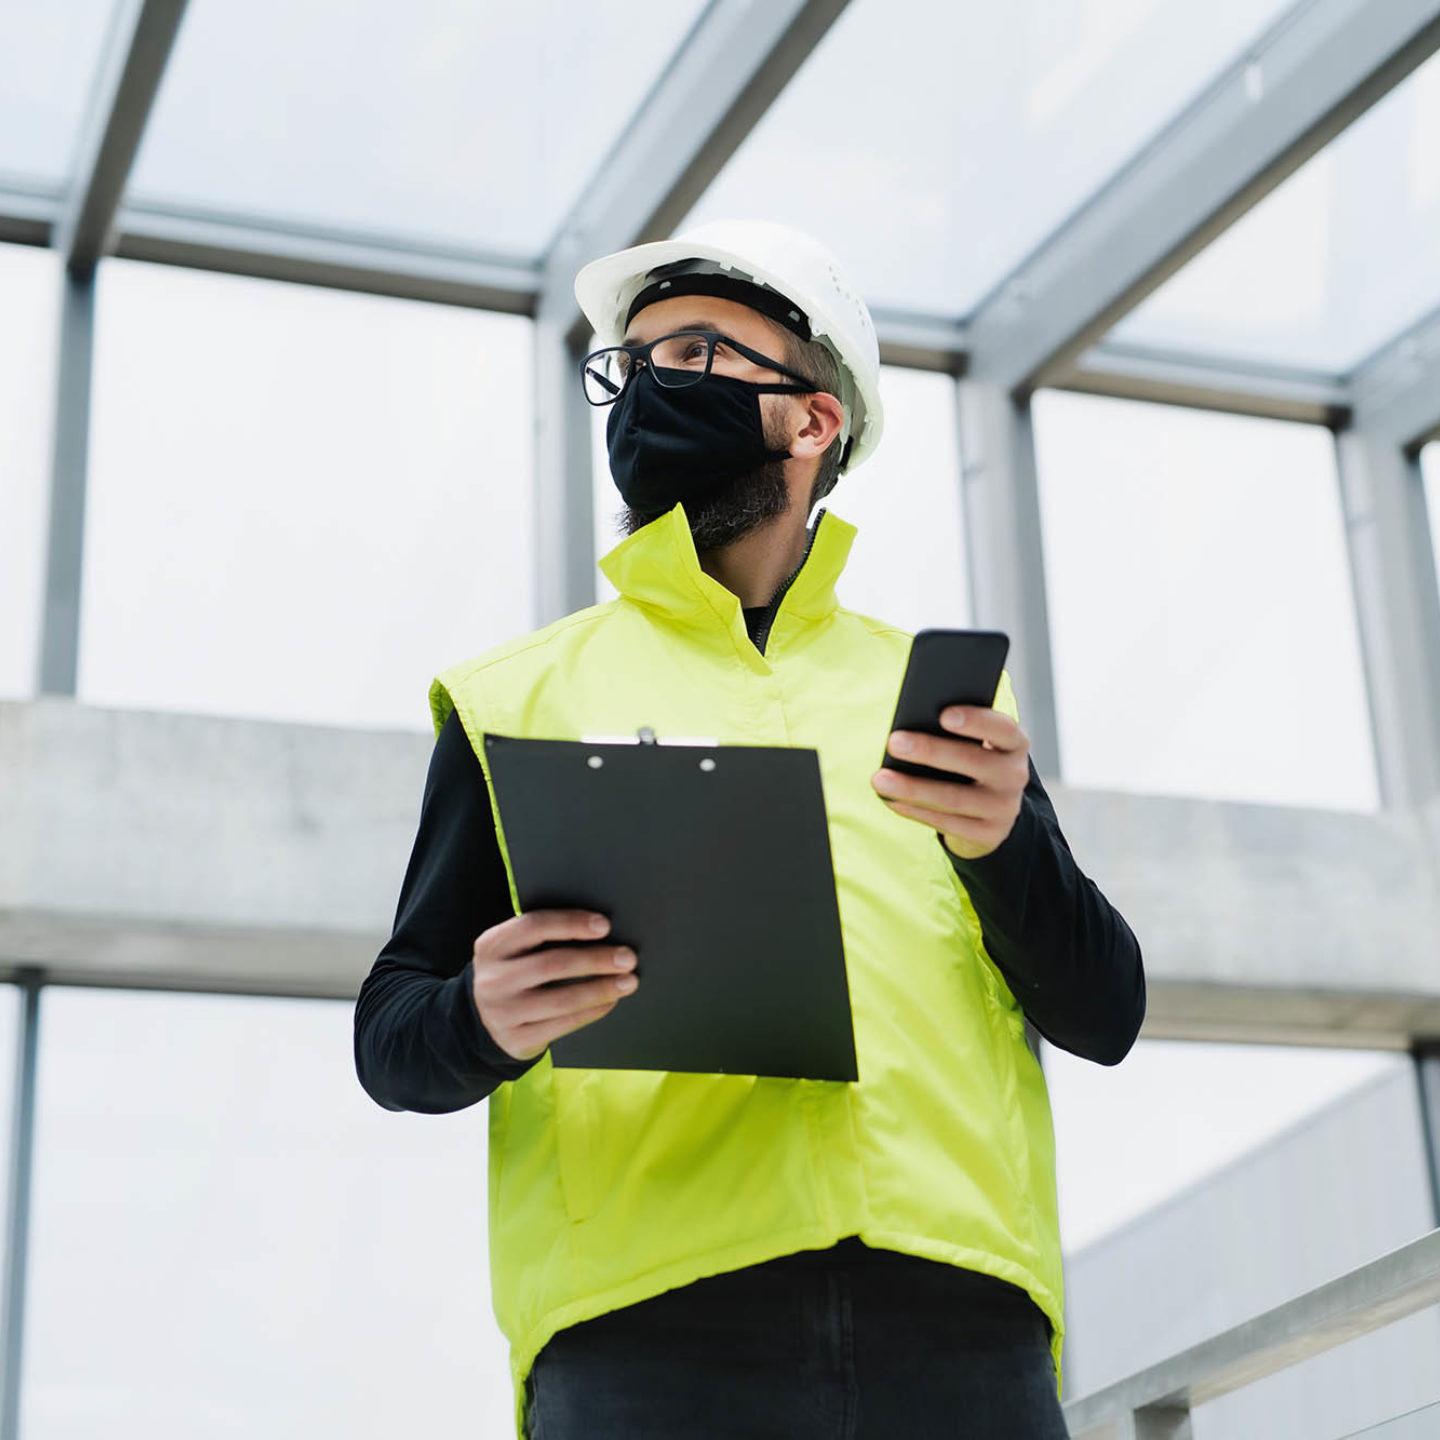 Man wearing mask, vest, and hardhat